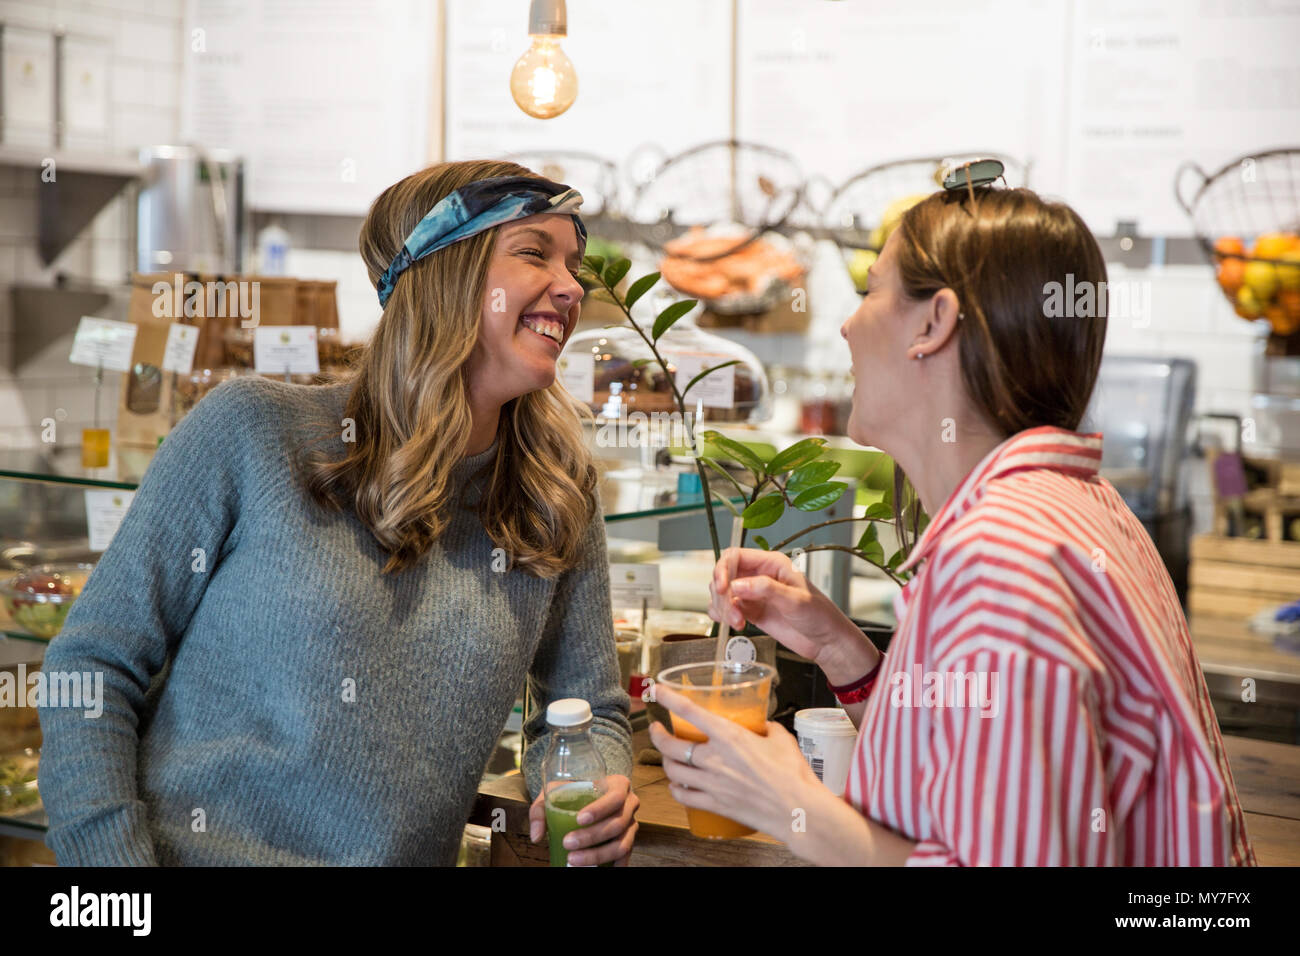 Two young female friends laughing together in cafe - Stock Image